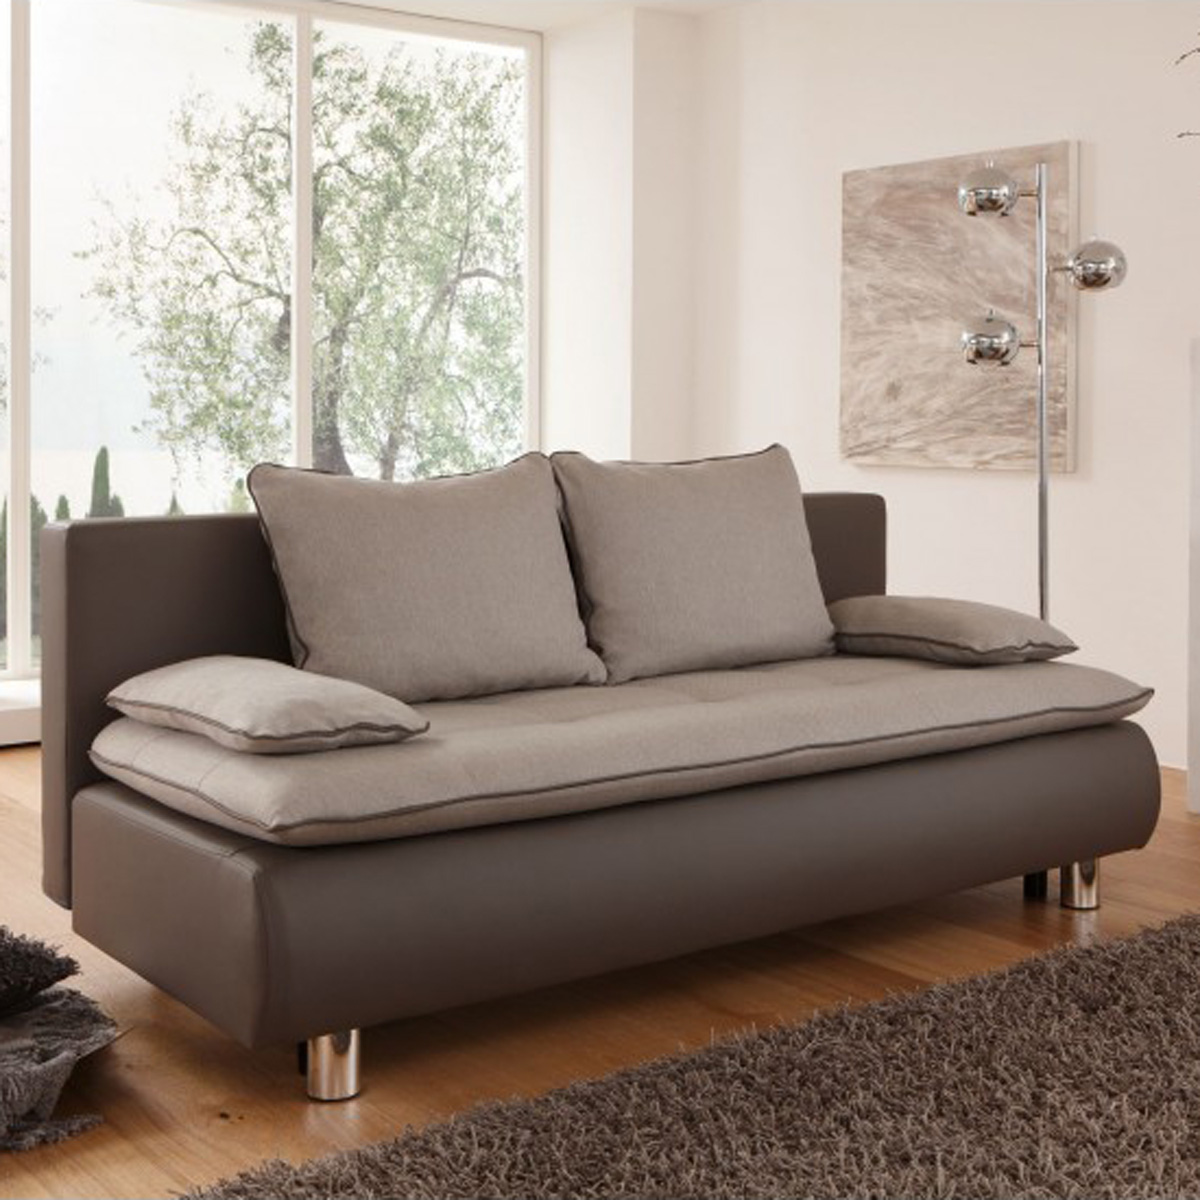 schlafsofa panem in grau schlamm und beige inkl kissen sofa funktionssofa ebay. Black Bedroom Furniture Sets. Home Design Ideas